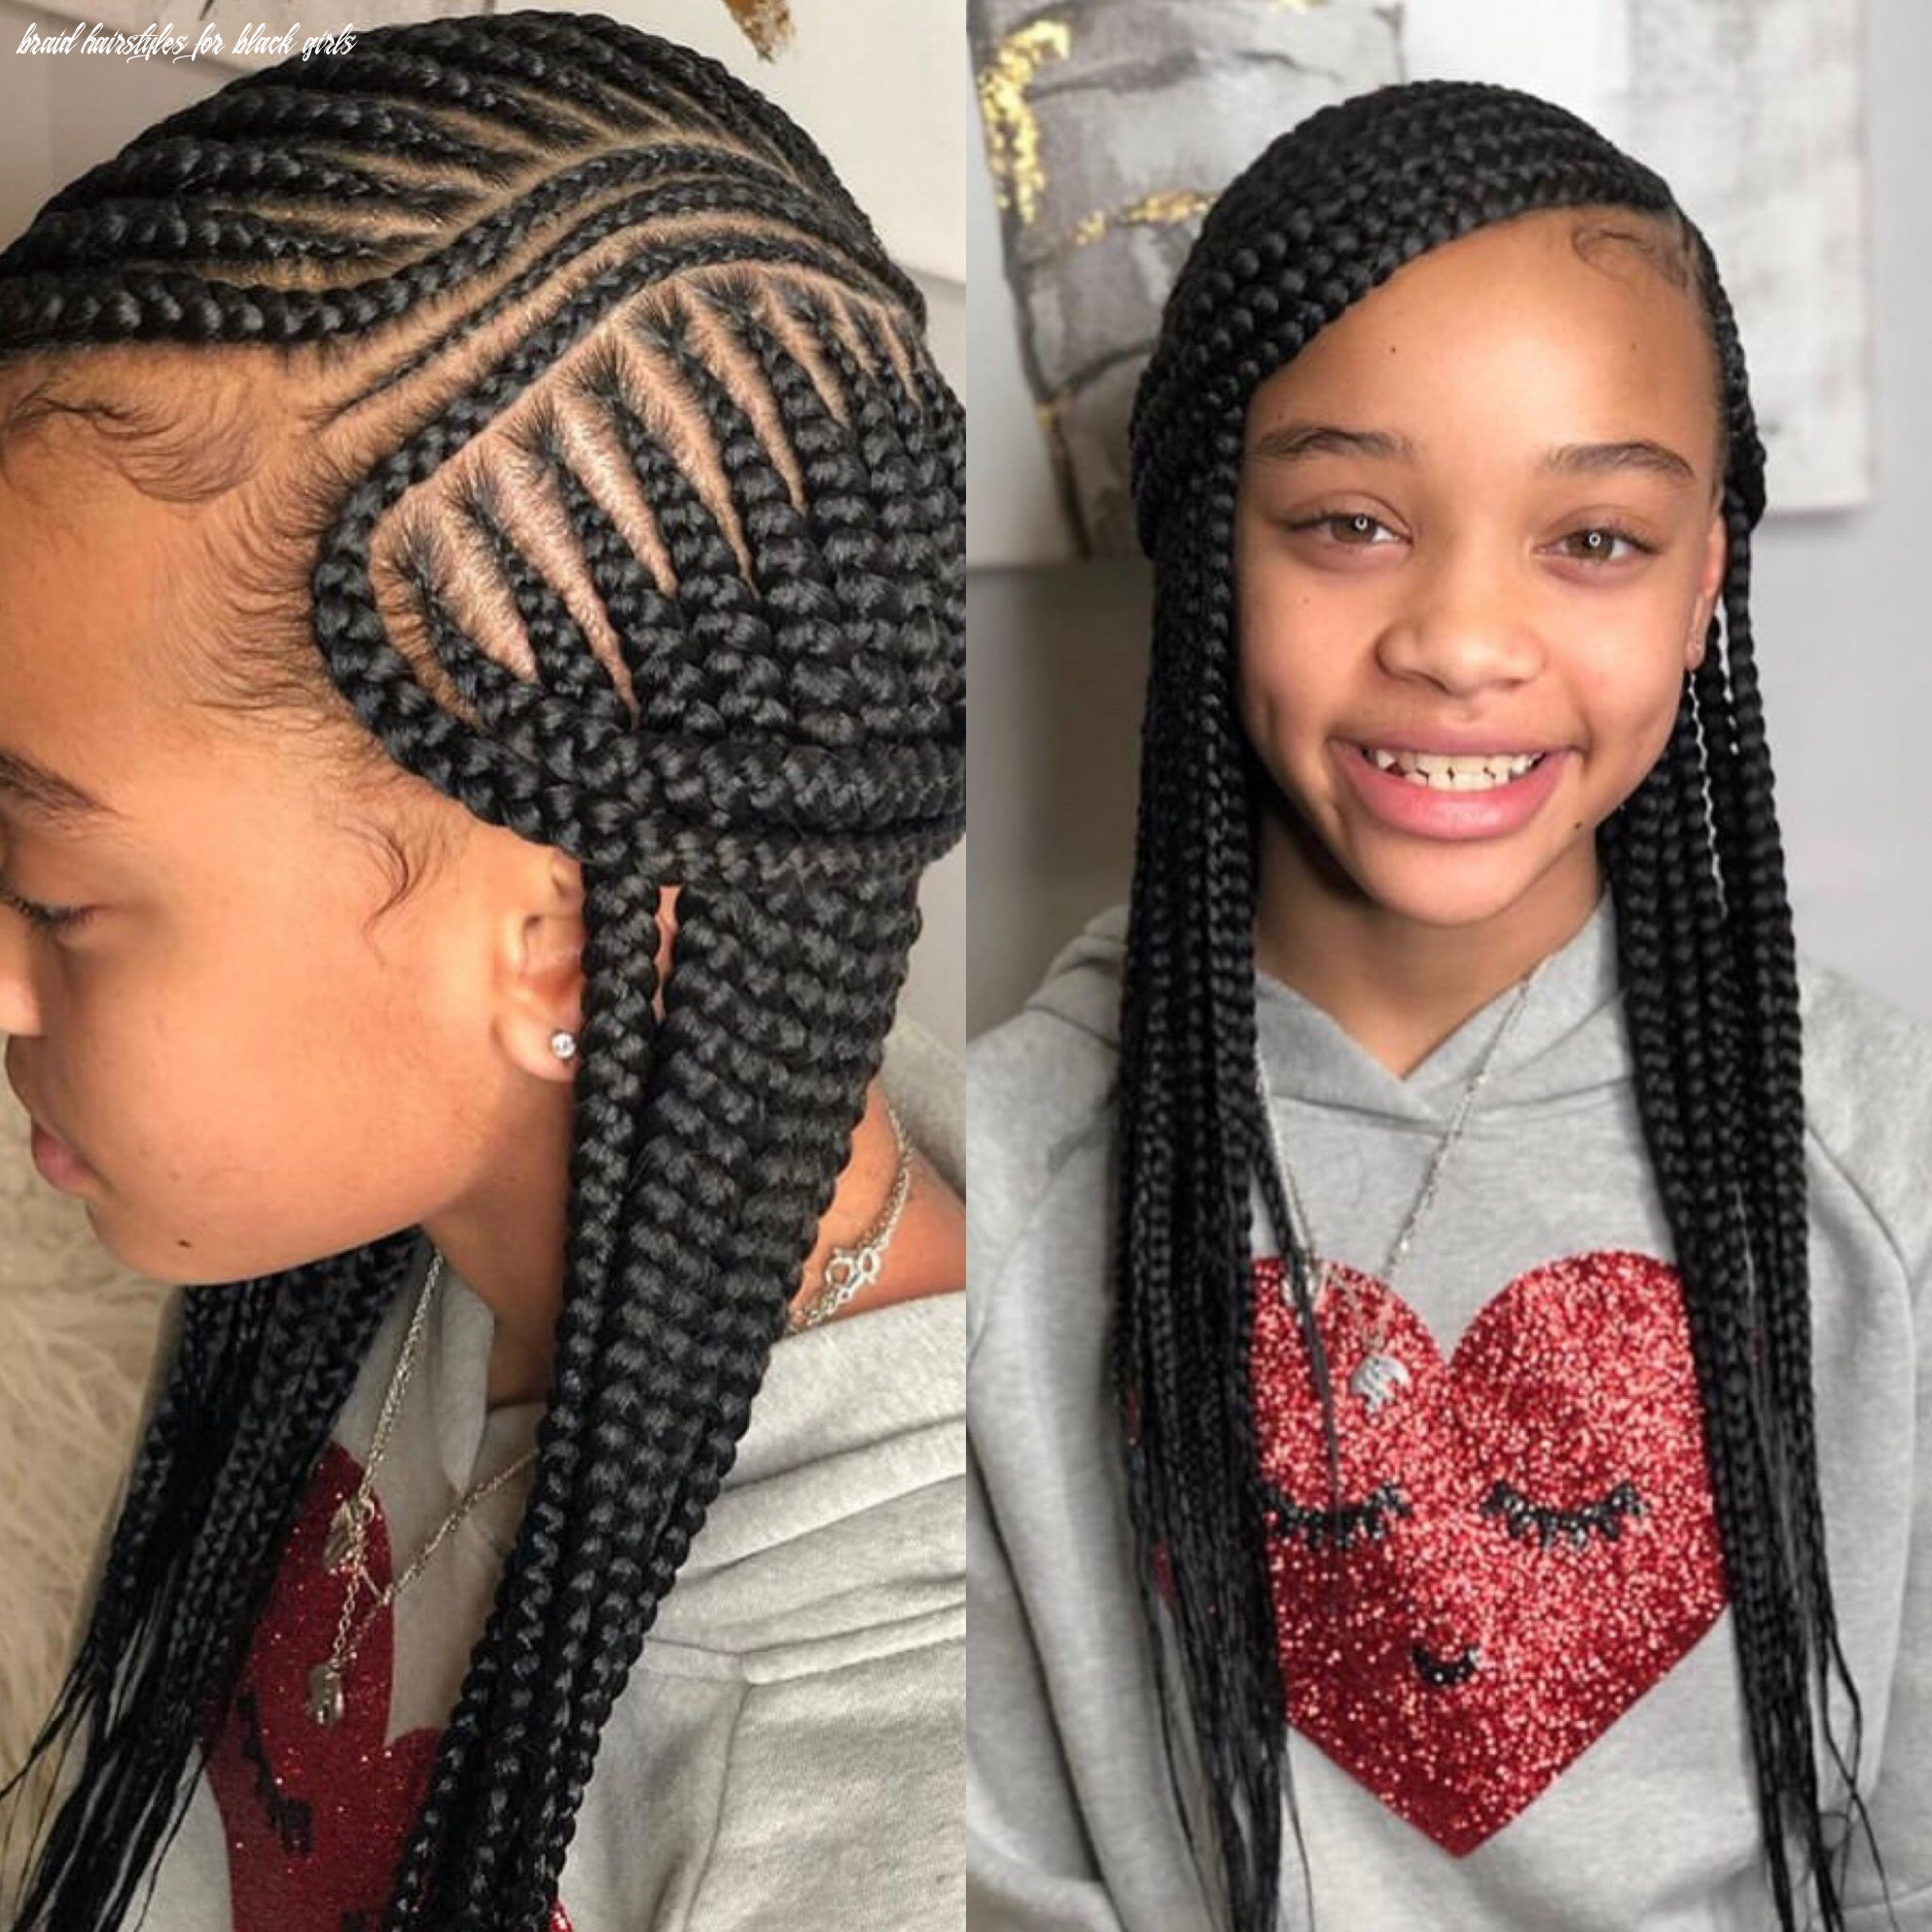 Pin by ariel robinson on braids!! (with images)   girls hairstyles